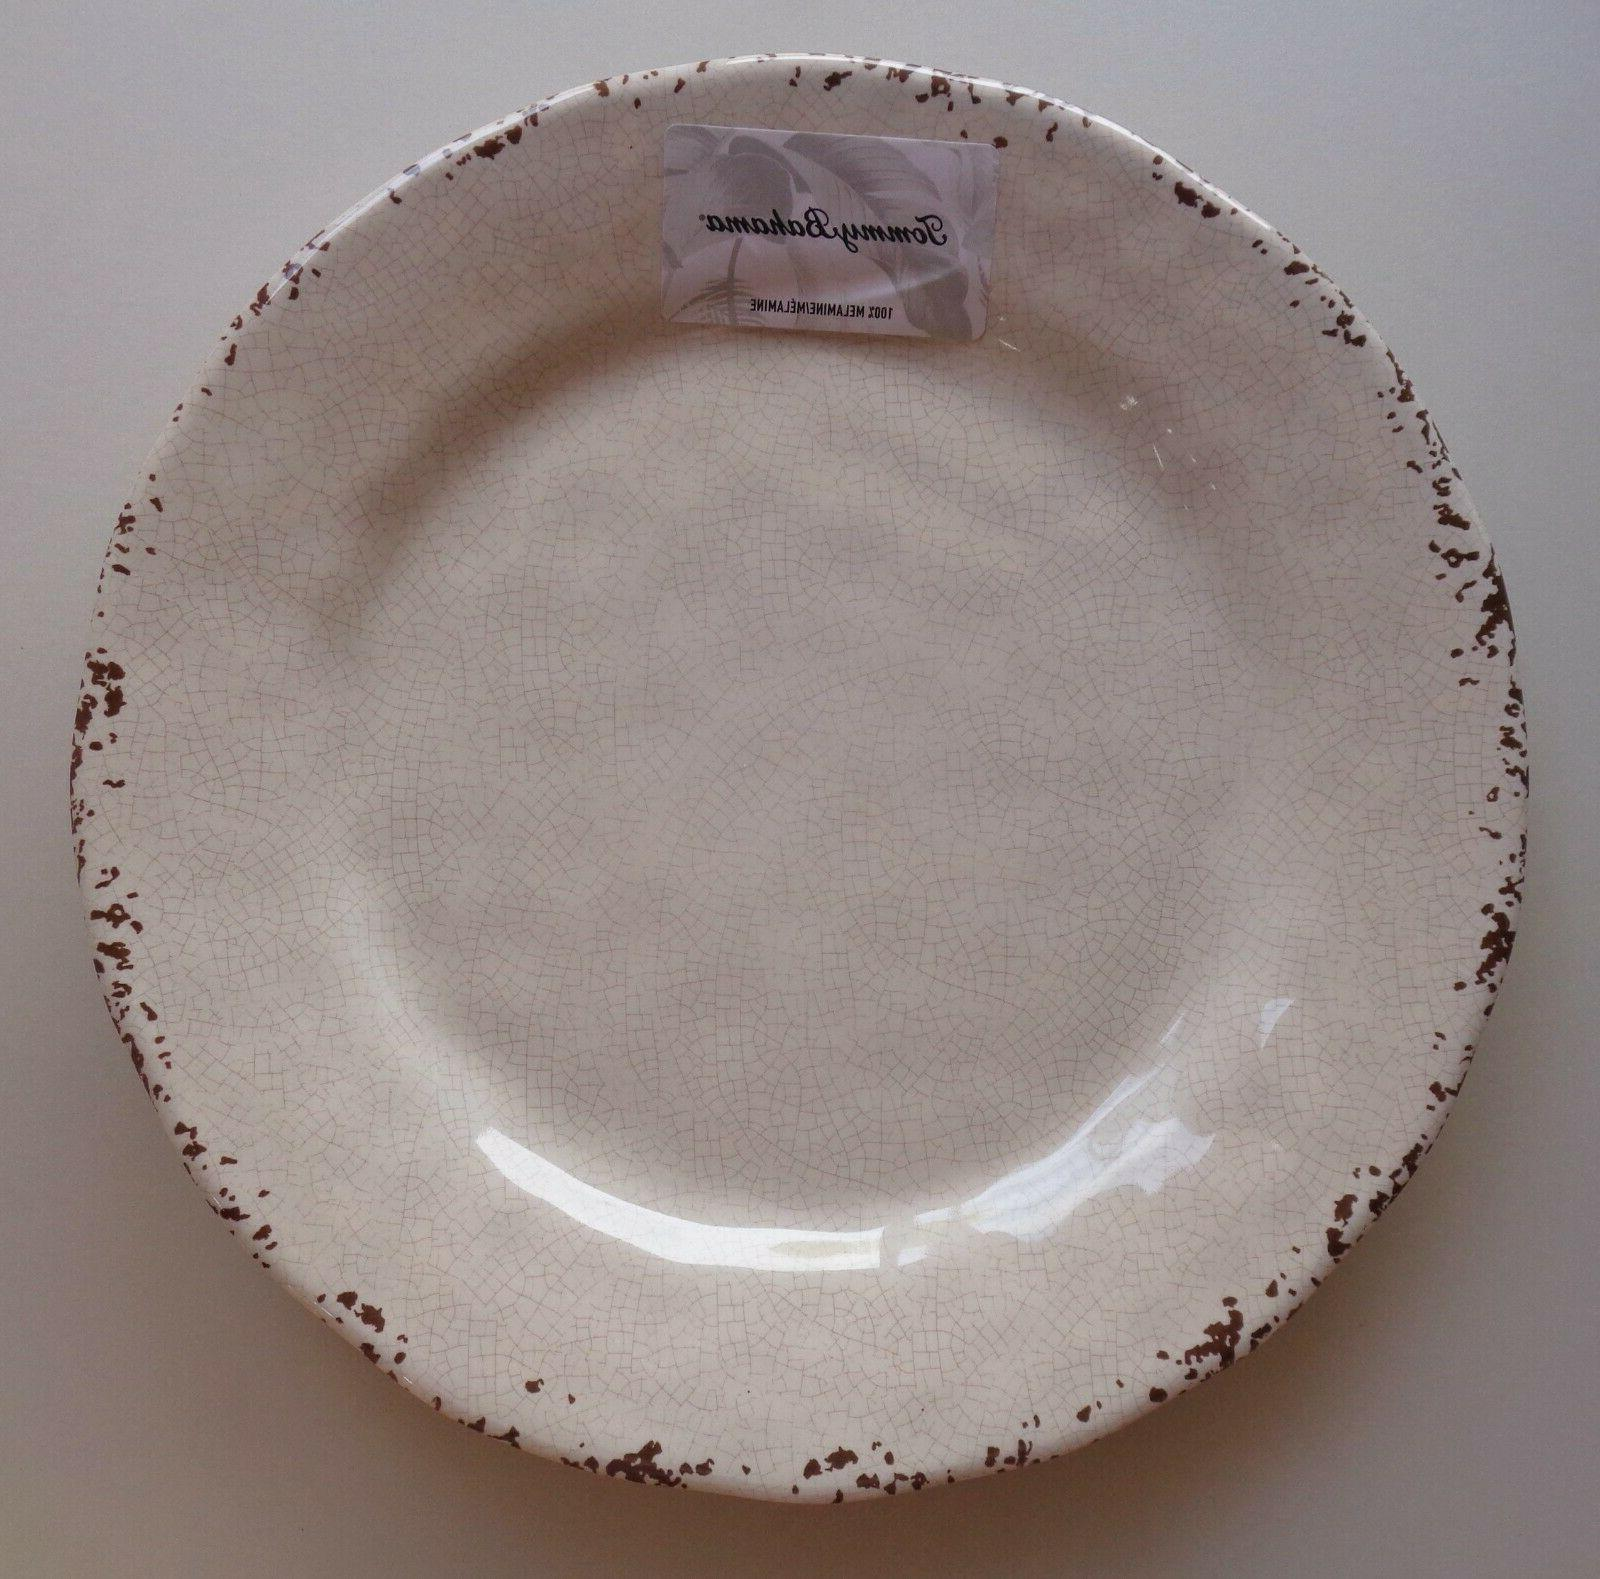 SET 4 Bahama 100% Plates NEW